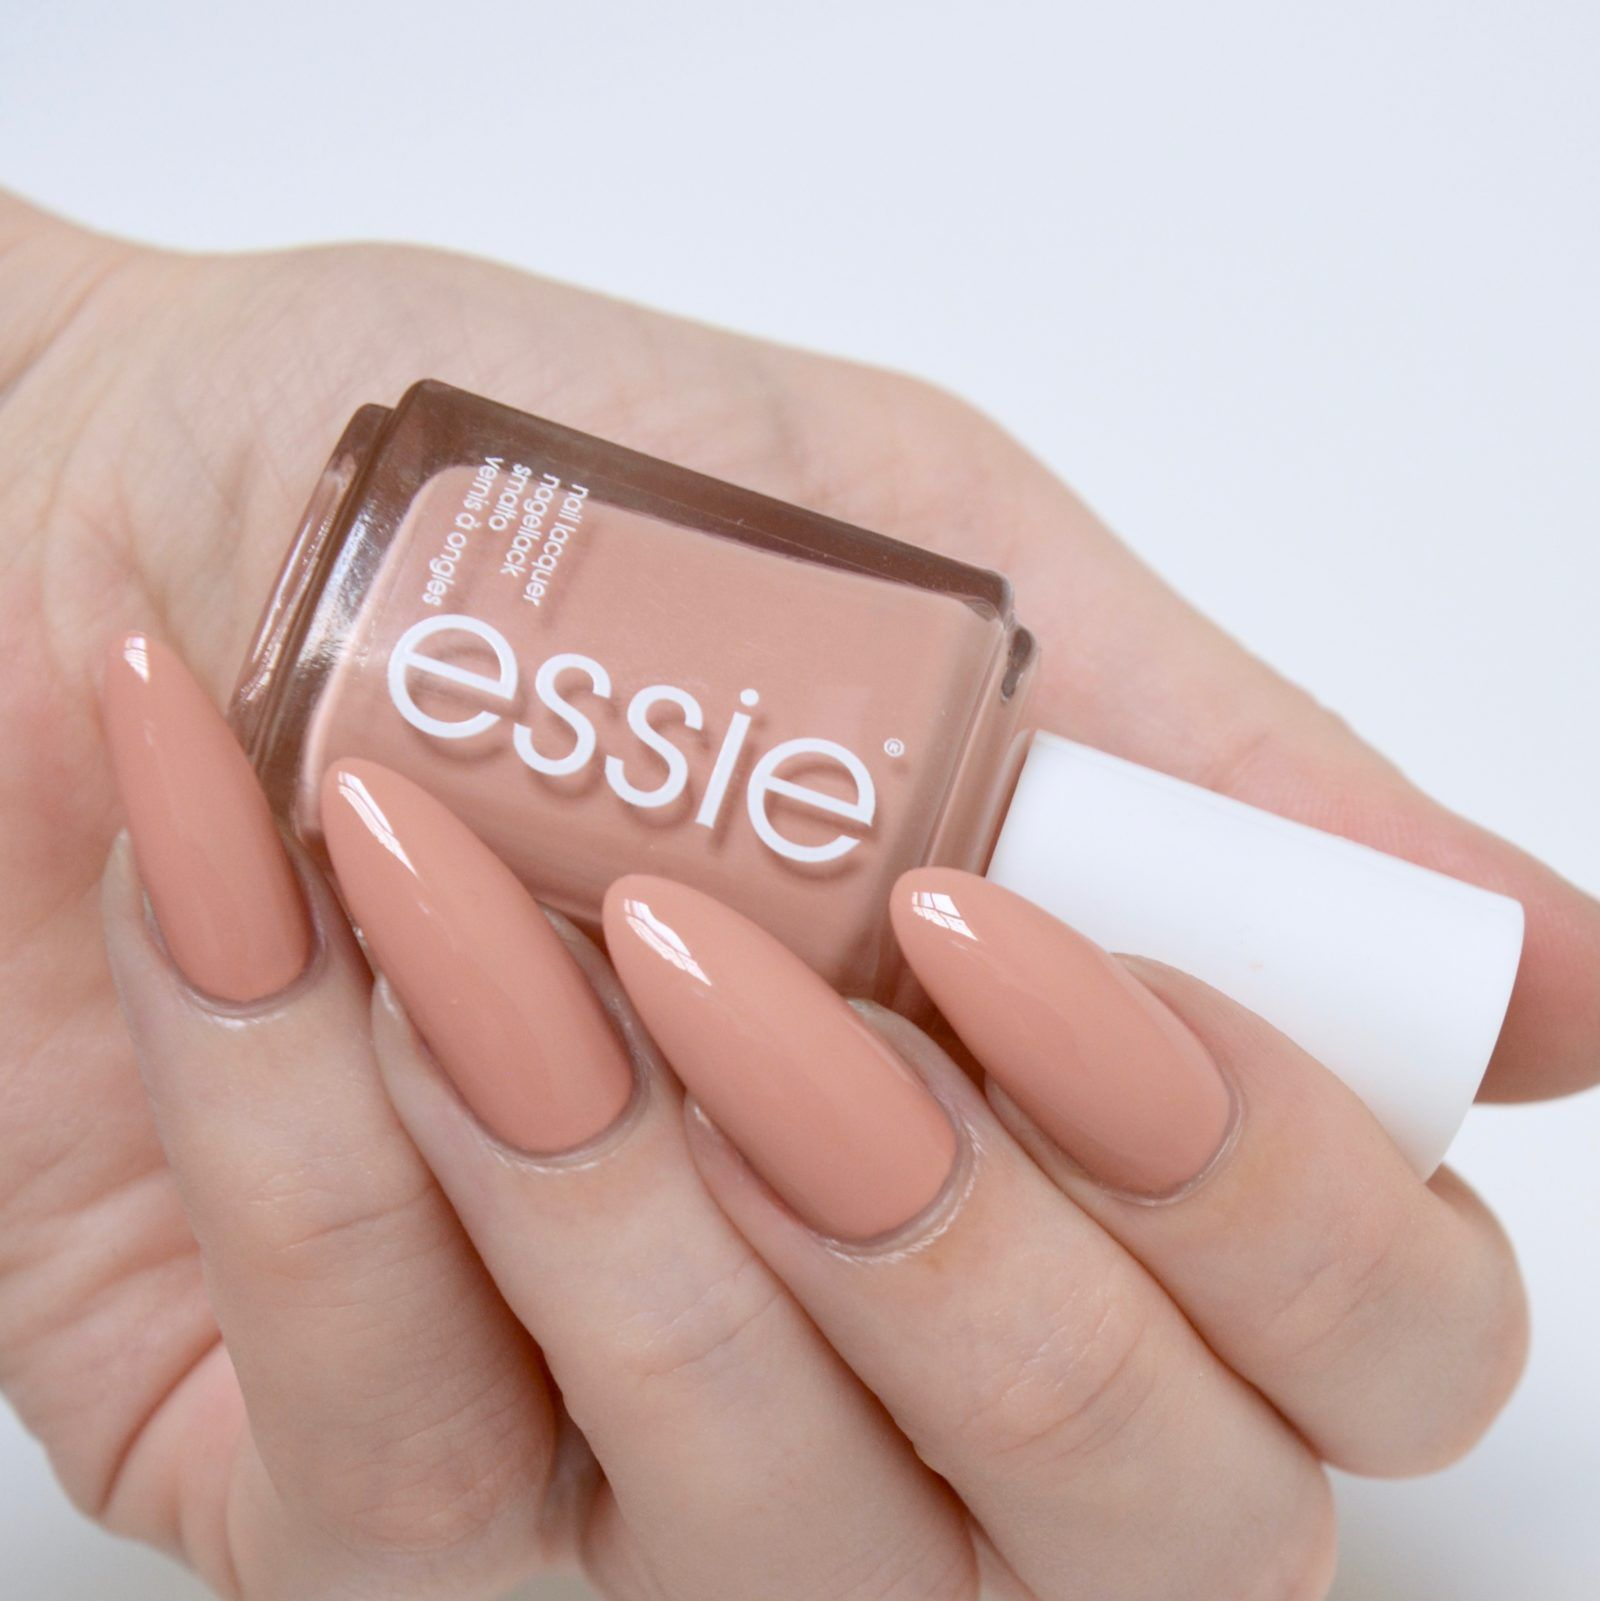 The best nude nail polishes for every skin tone, according to our editors